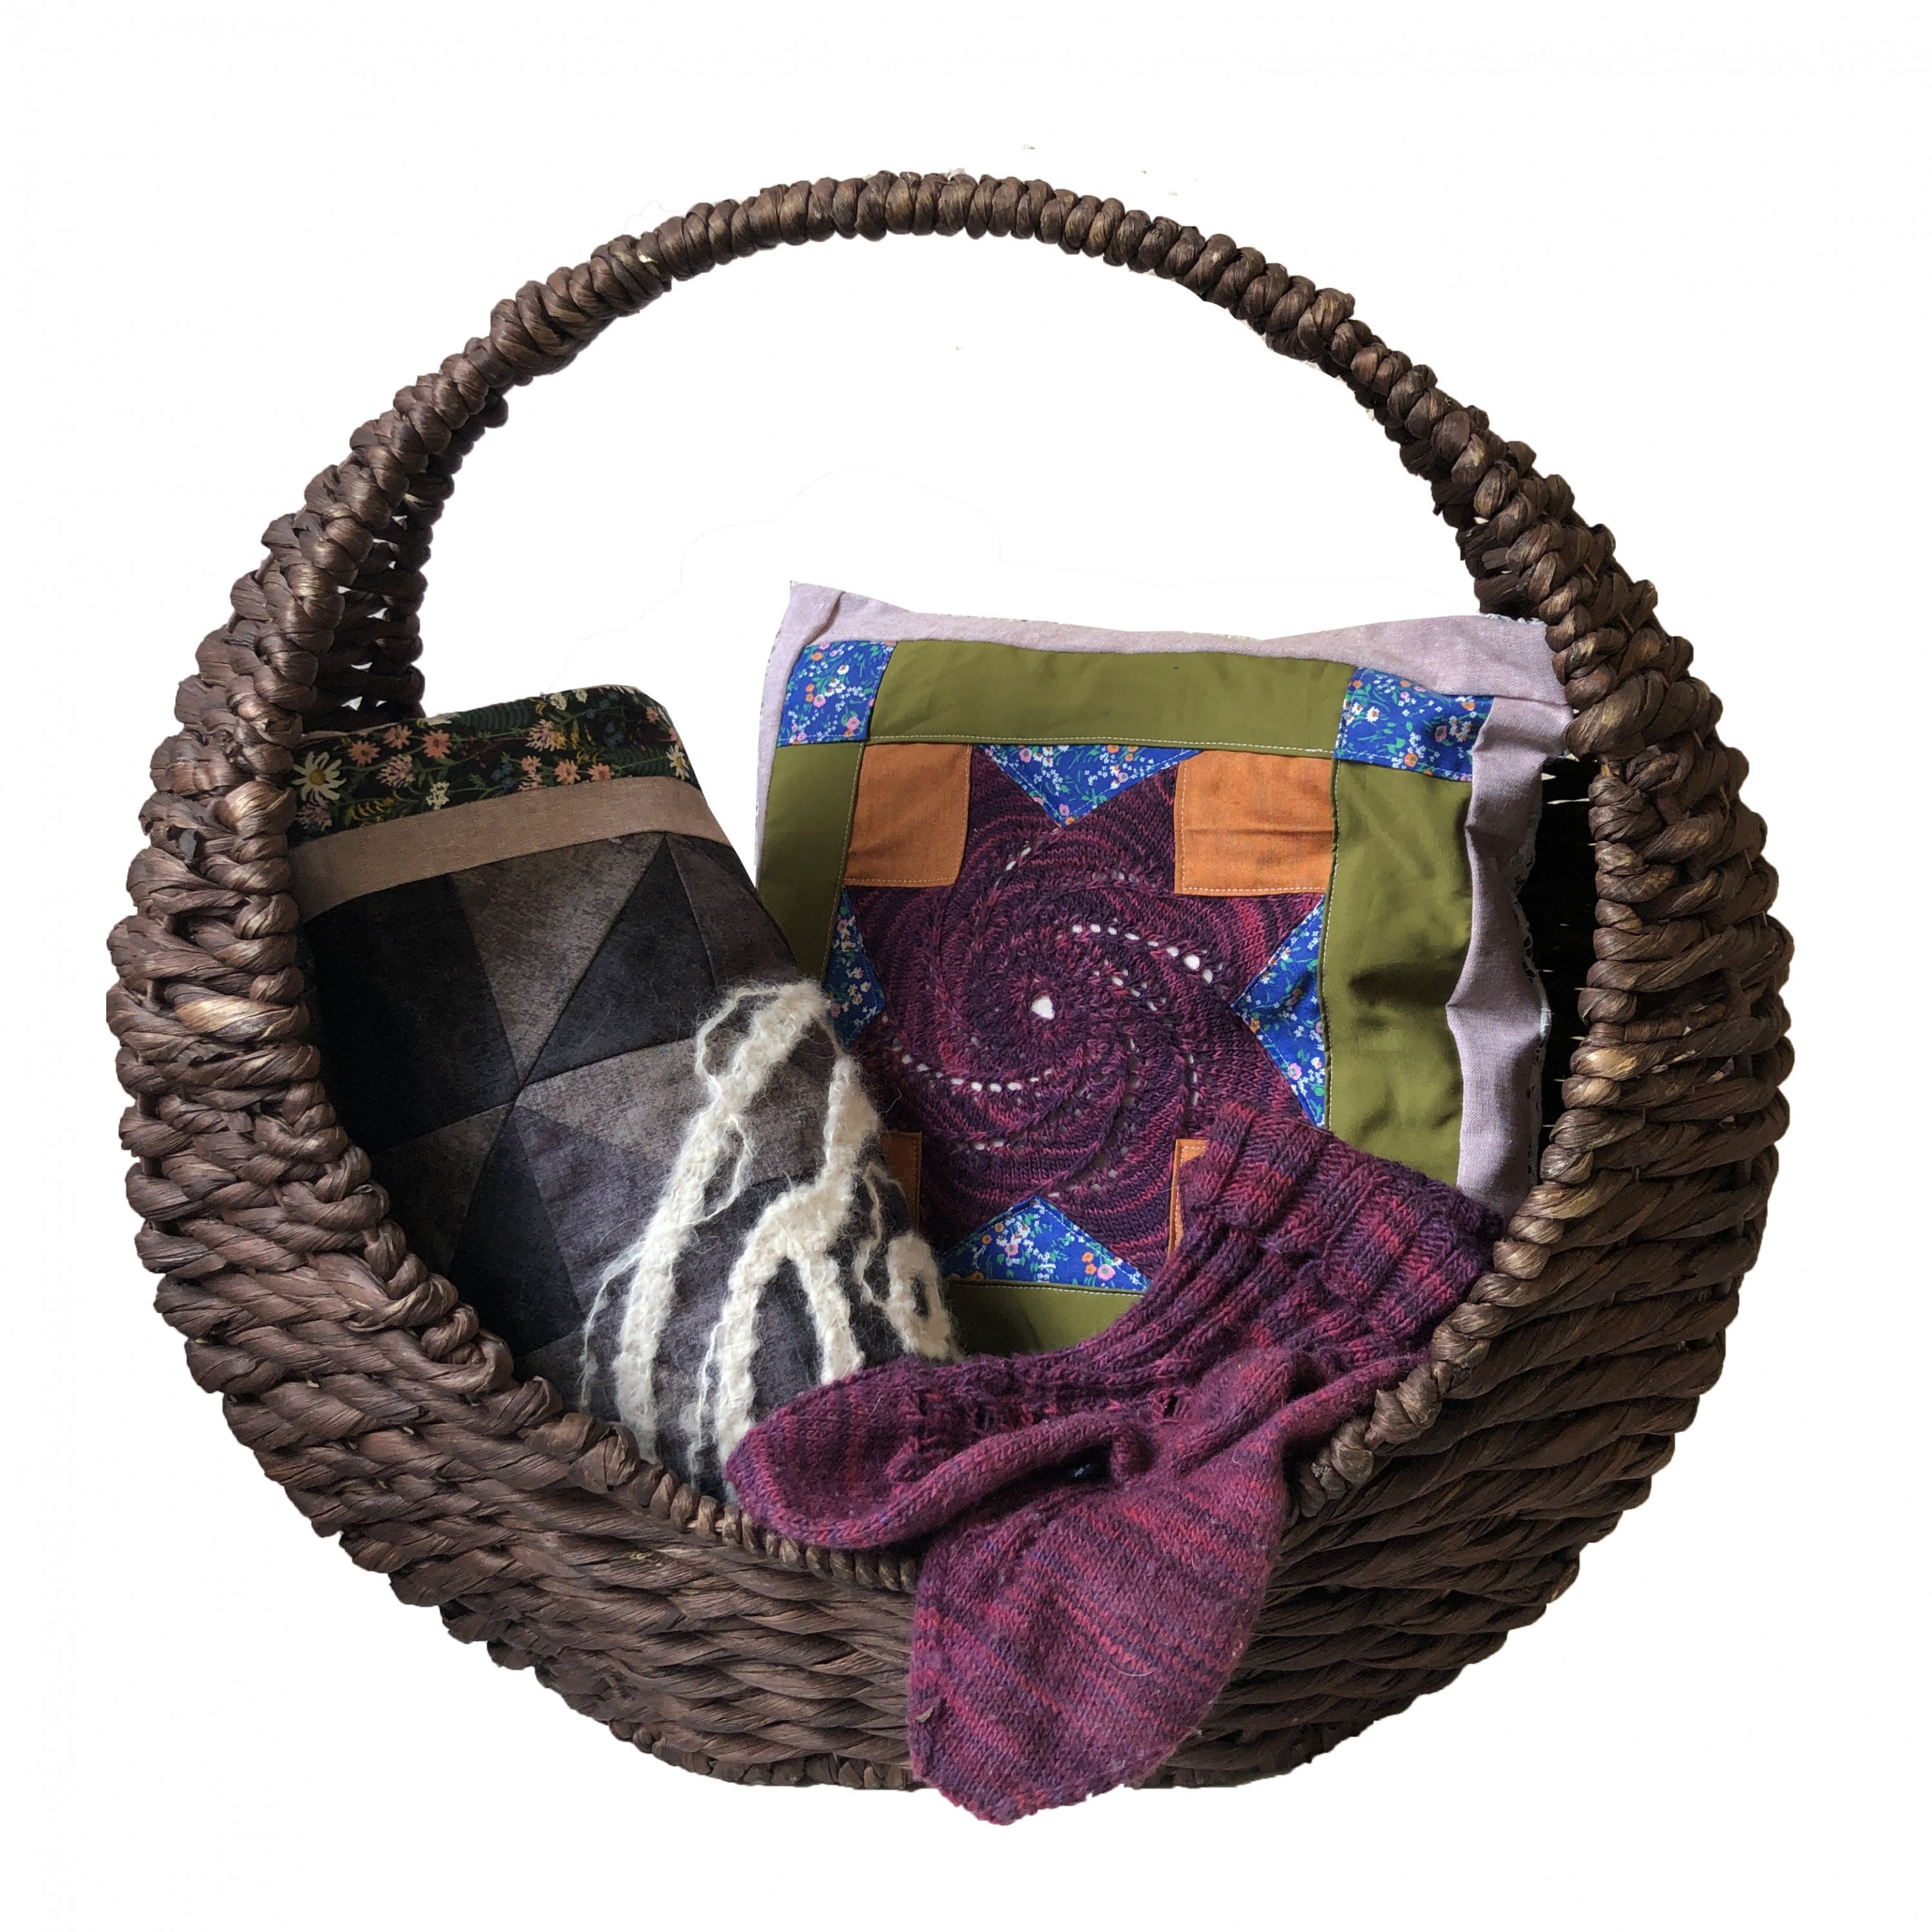 A crescent-shaped basket containing a pillow, a rolled up quilt, and a pair of socks.